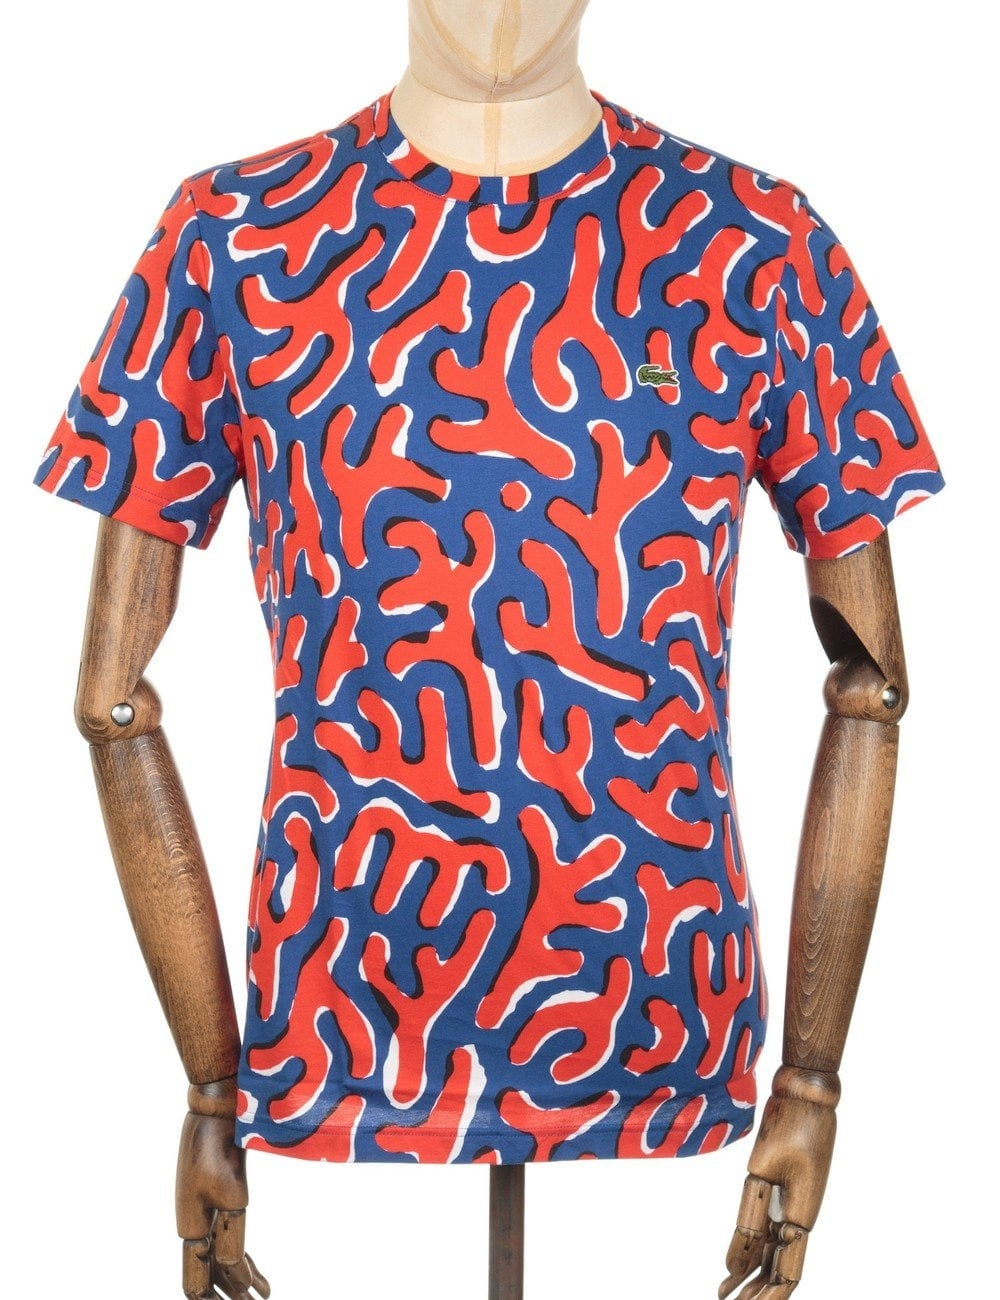 35764353a1980d Lacoste Live Jersey Printed T-shirt - Blue Red - Clothing from Fat ...